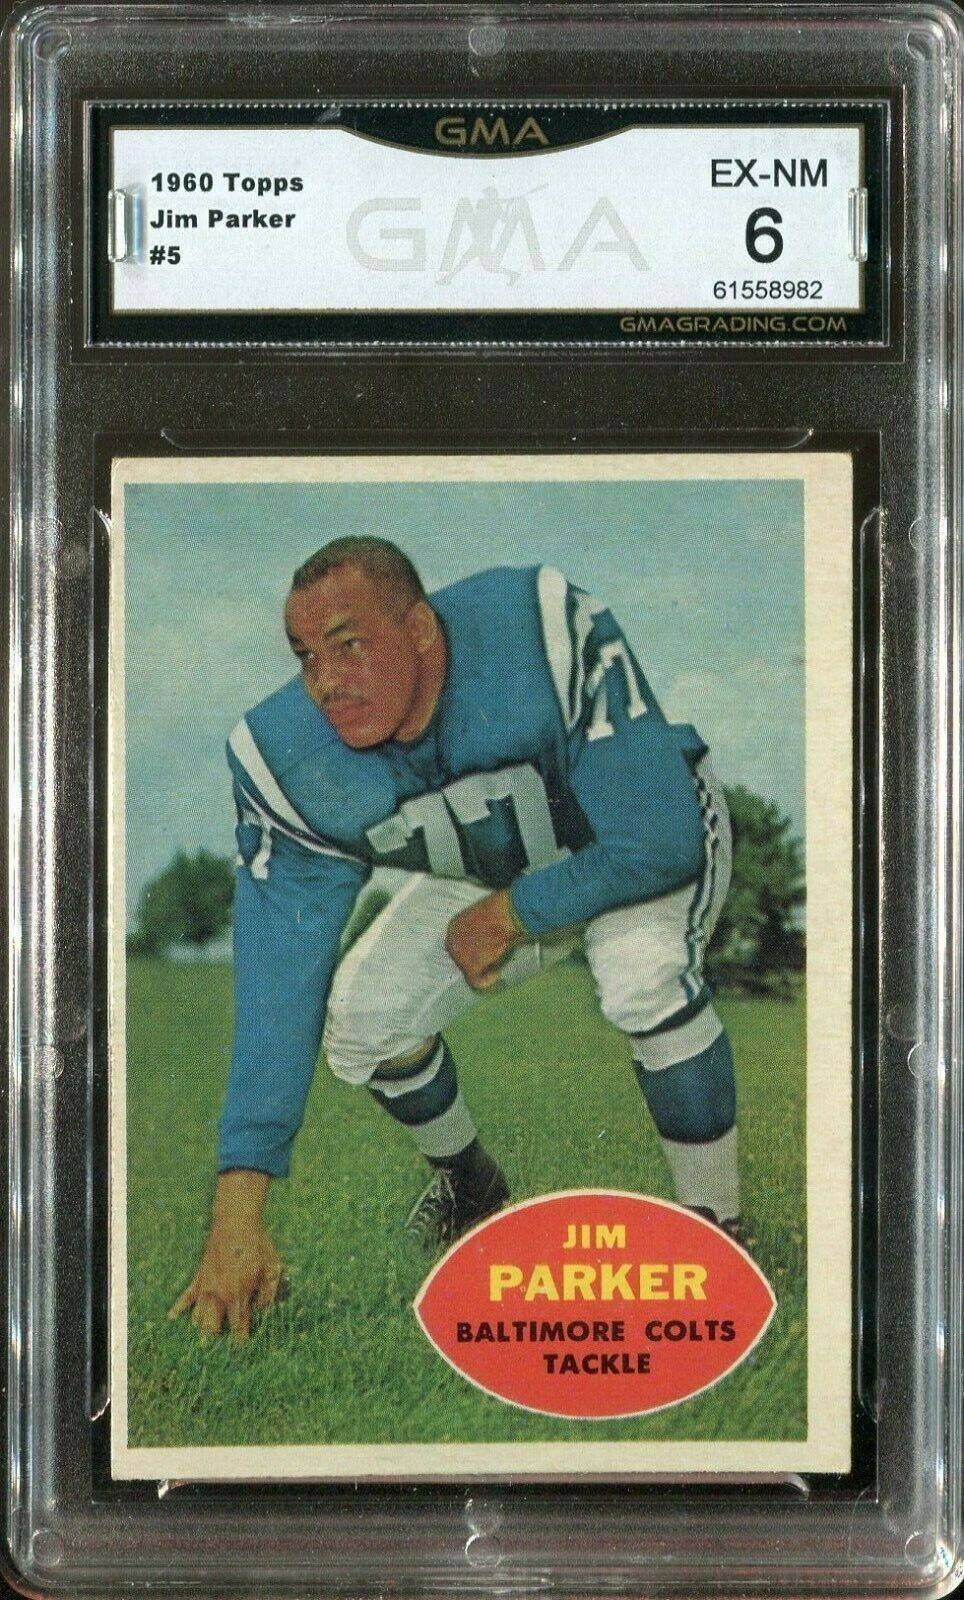 Primary image for 1960 Topps #5 Jim Parker Hall of Fame - Baltimore Colts (GMA Graded EX-NM 6)